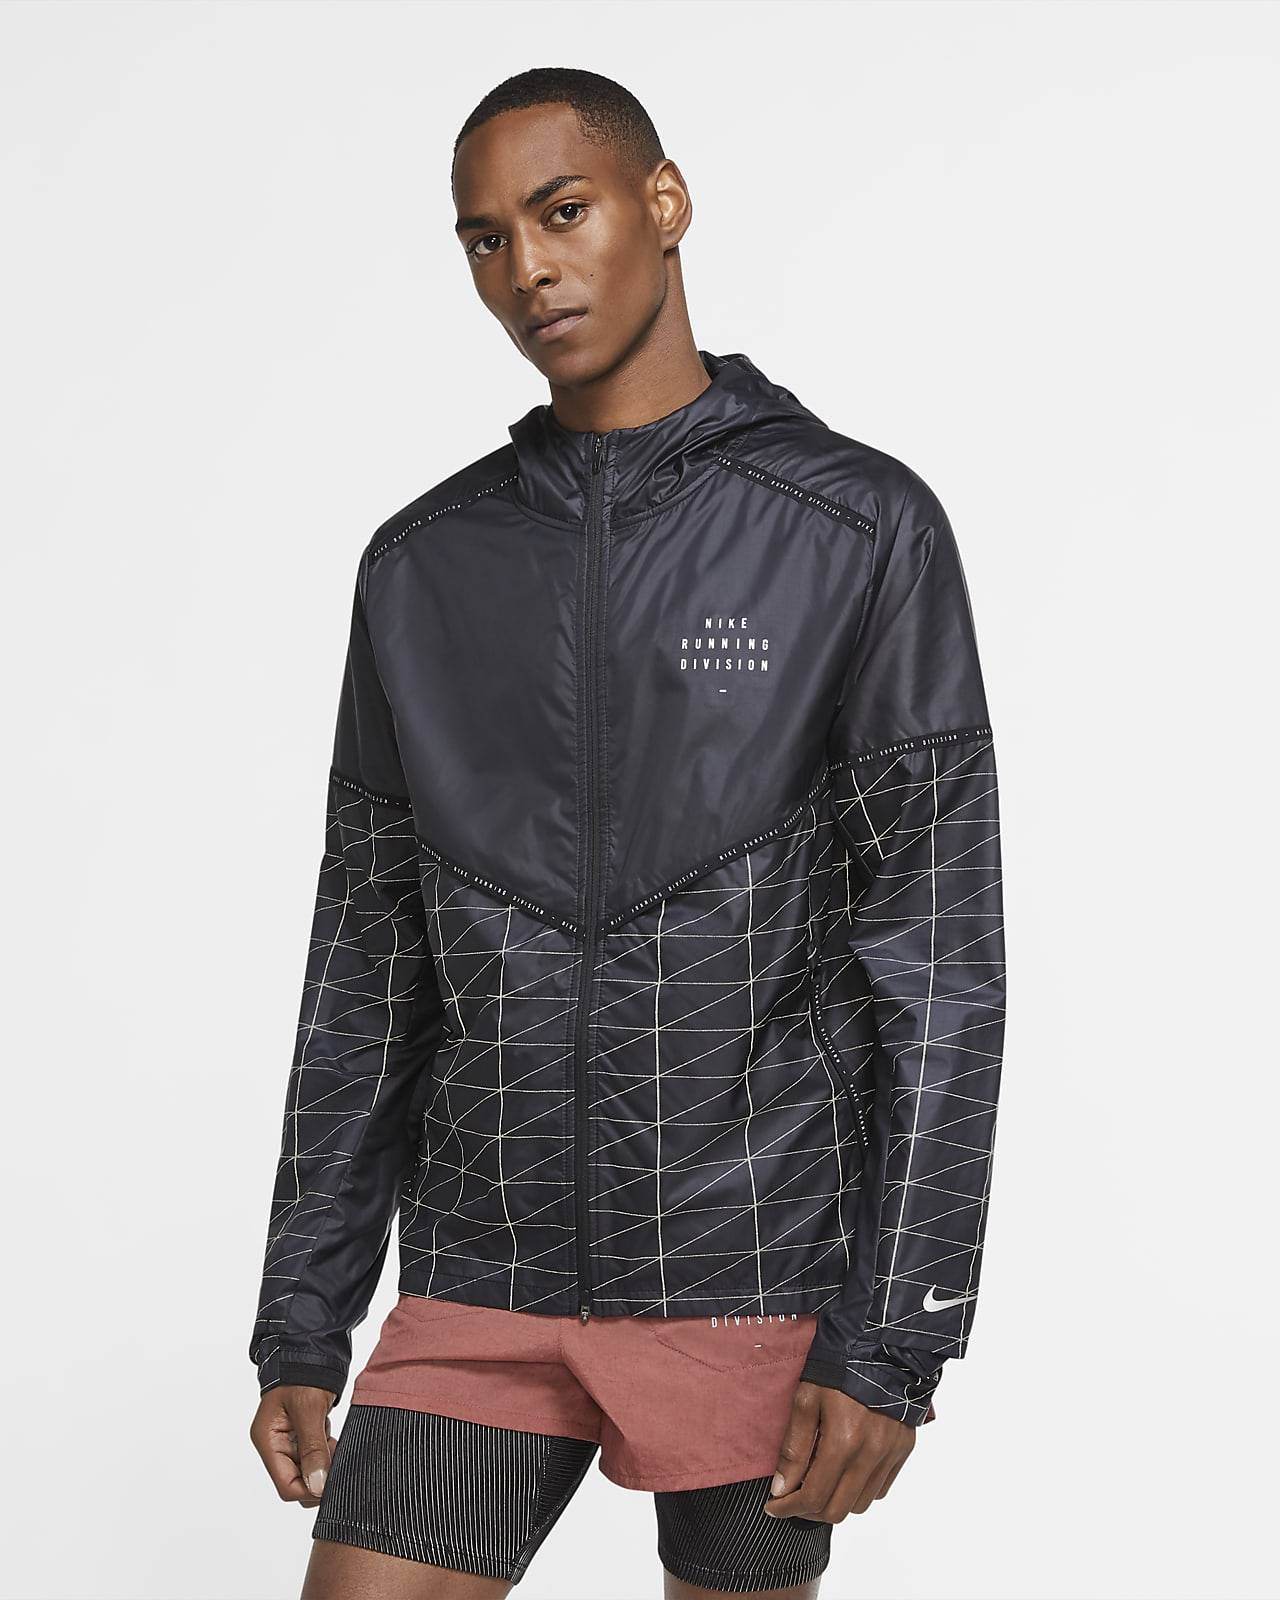 Veste de running Nike Flash Run Division pour Homme